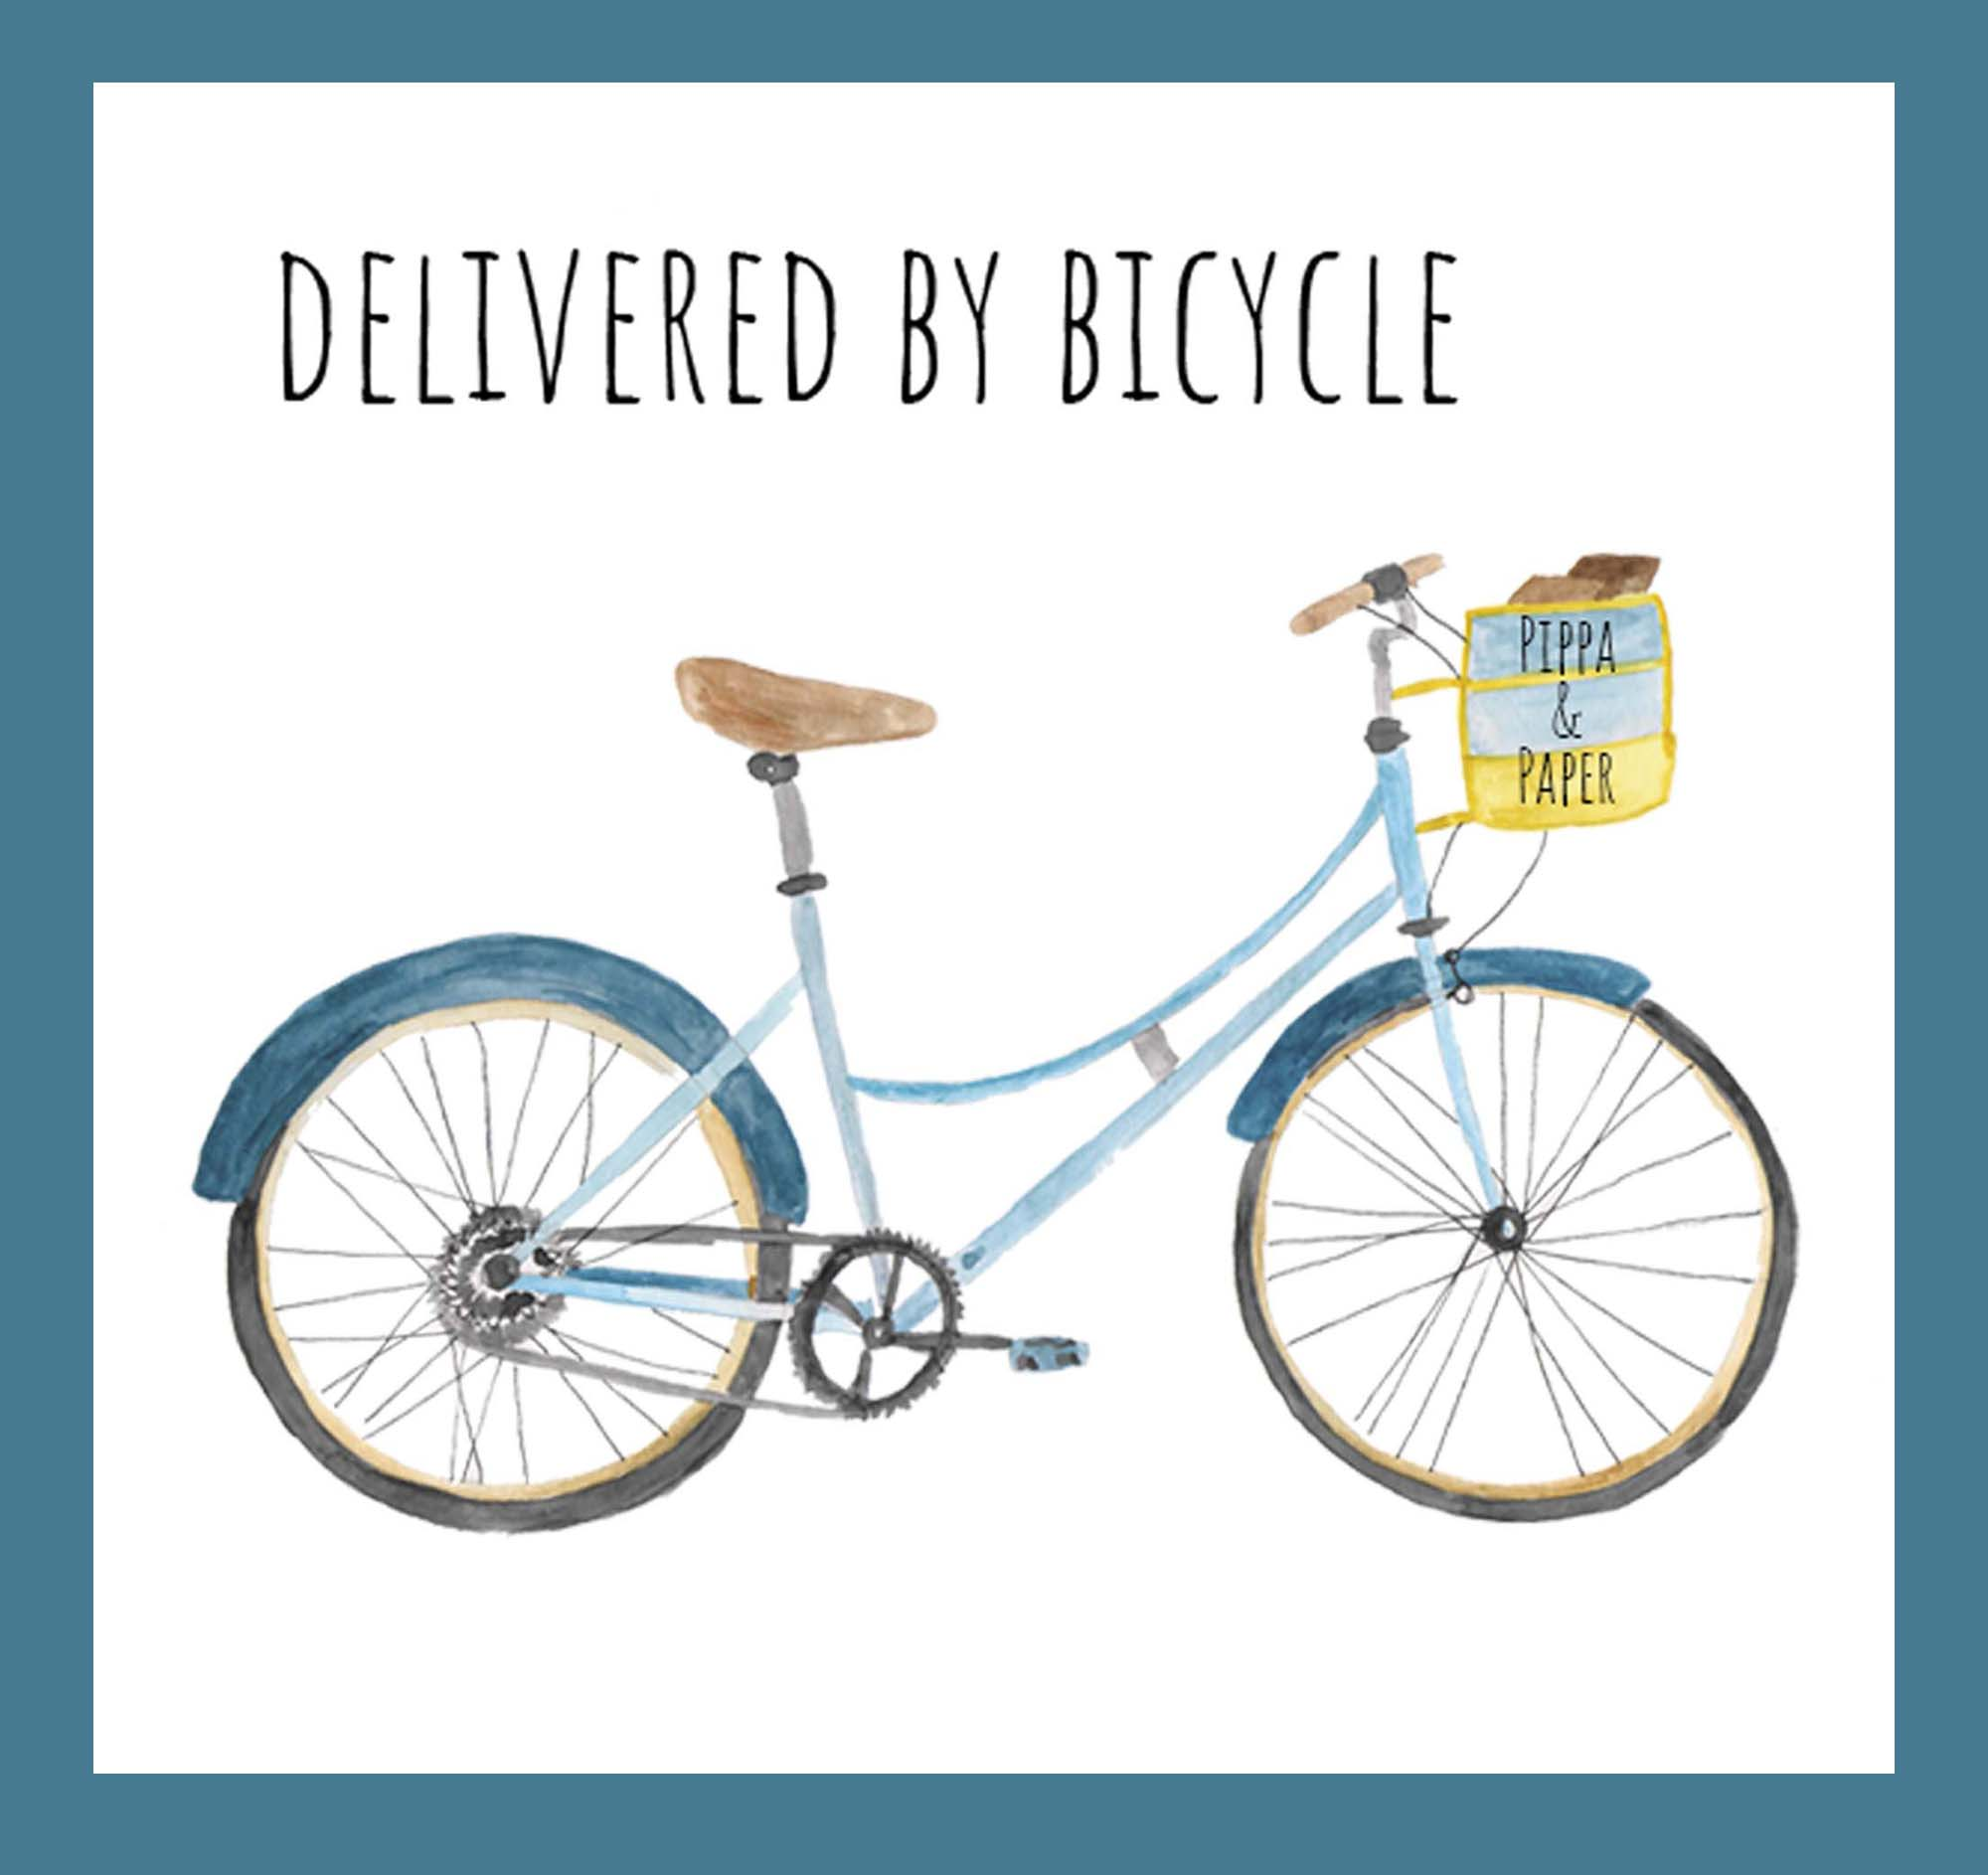 Delivered by bicycle.